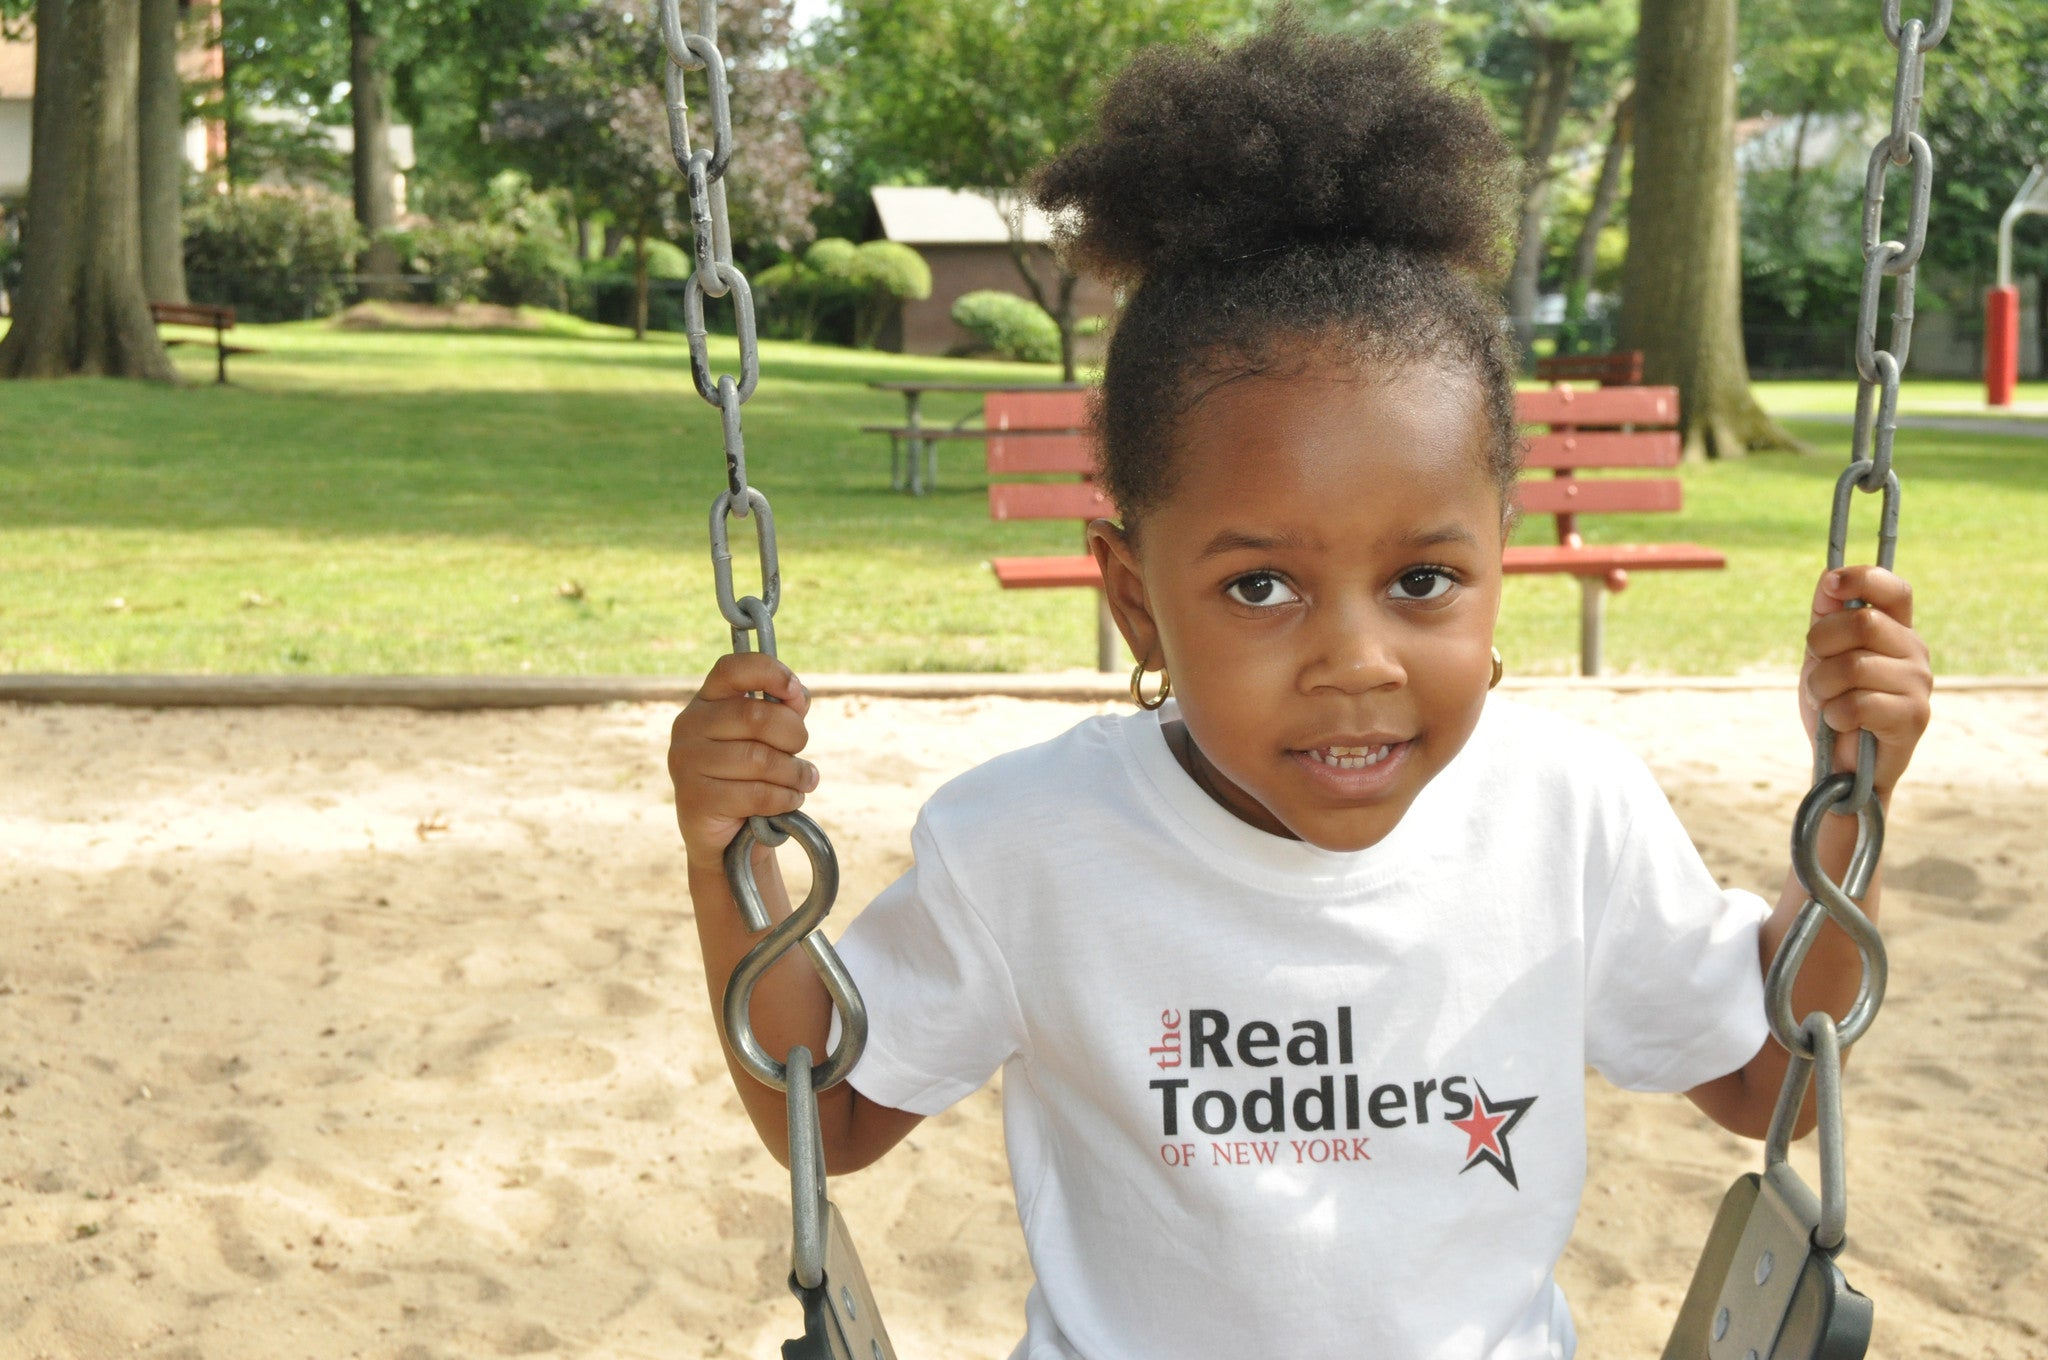 """The Real Toddlers of NEW YORK"" T Shirt For Toddlers and Young Girls"